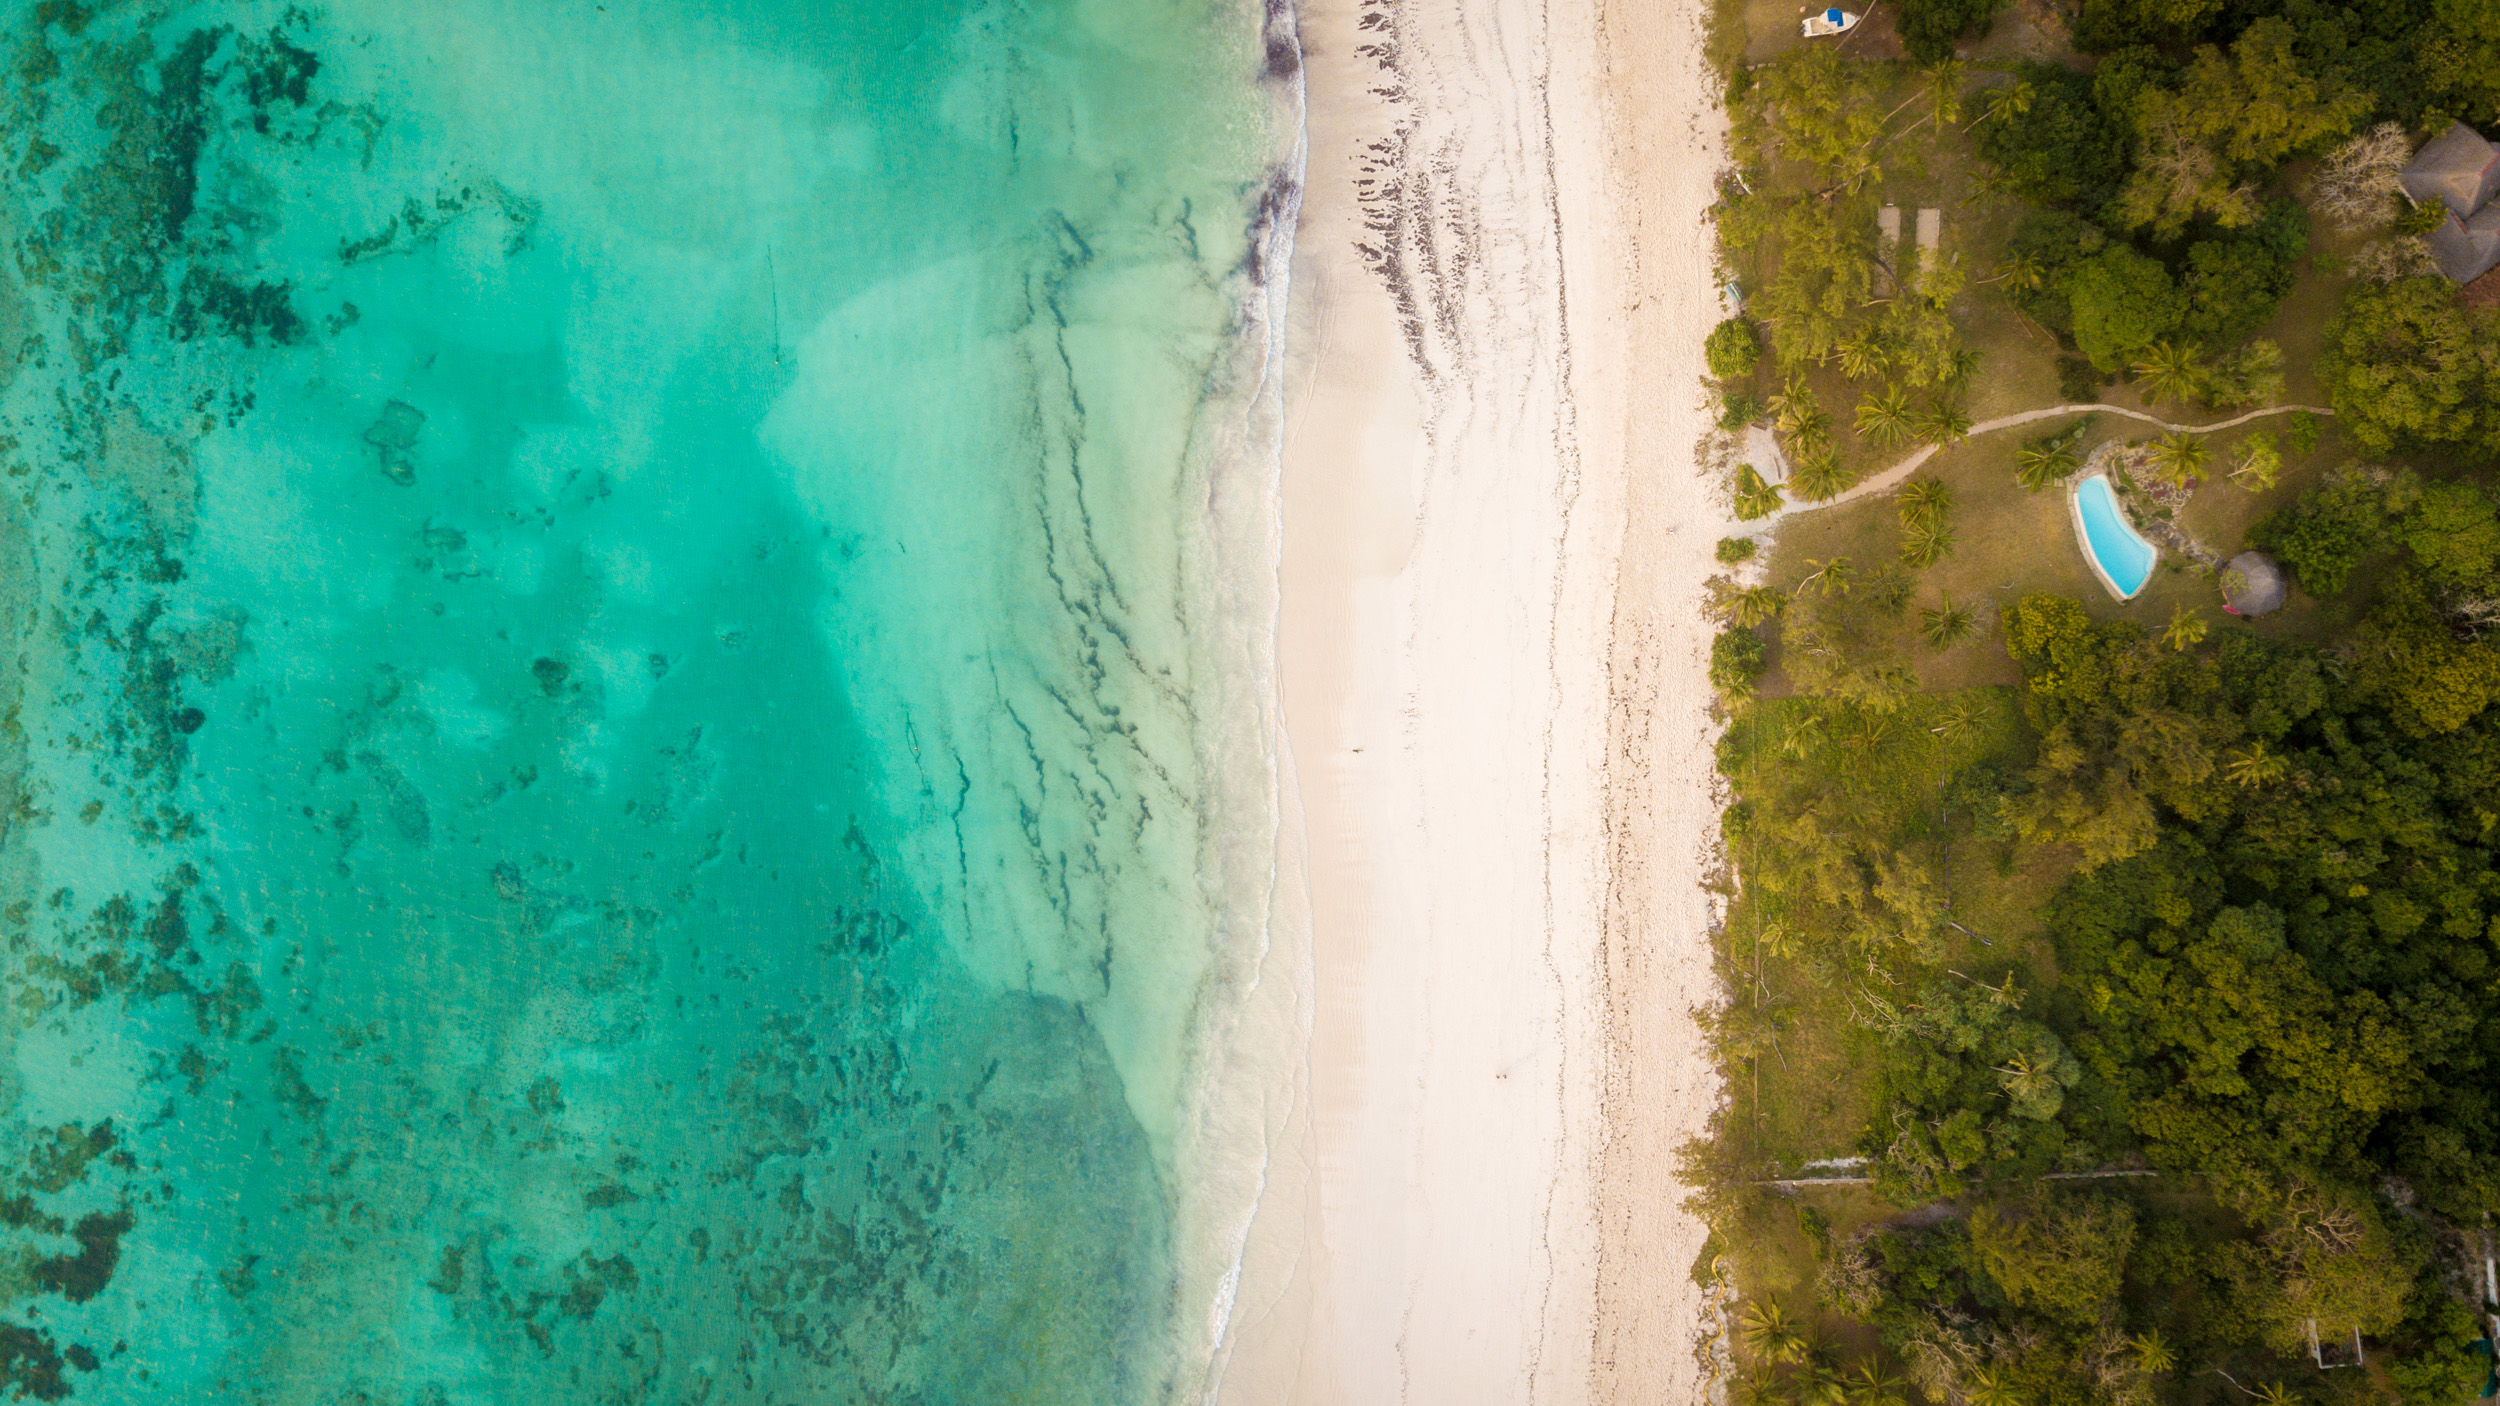 Diani Beach from above - the place I am staying is called Diani House - I can recommend it if you want a tranquil paradise-like place.